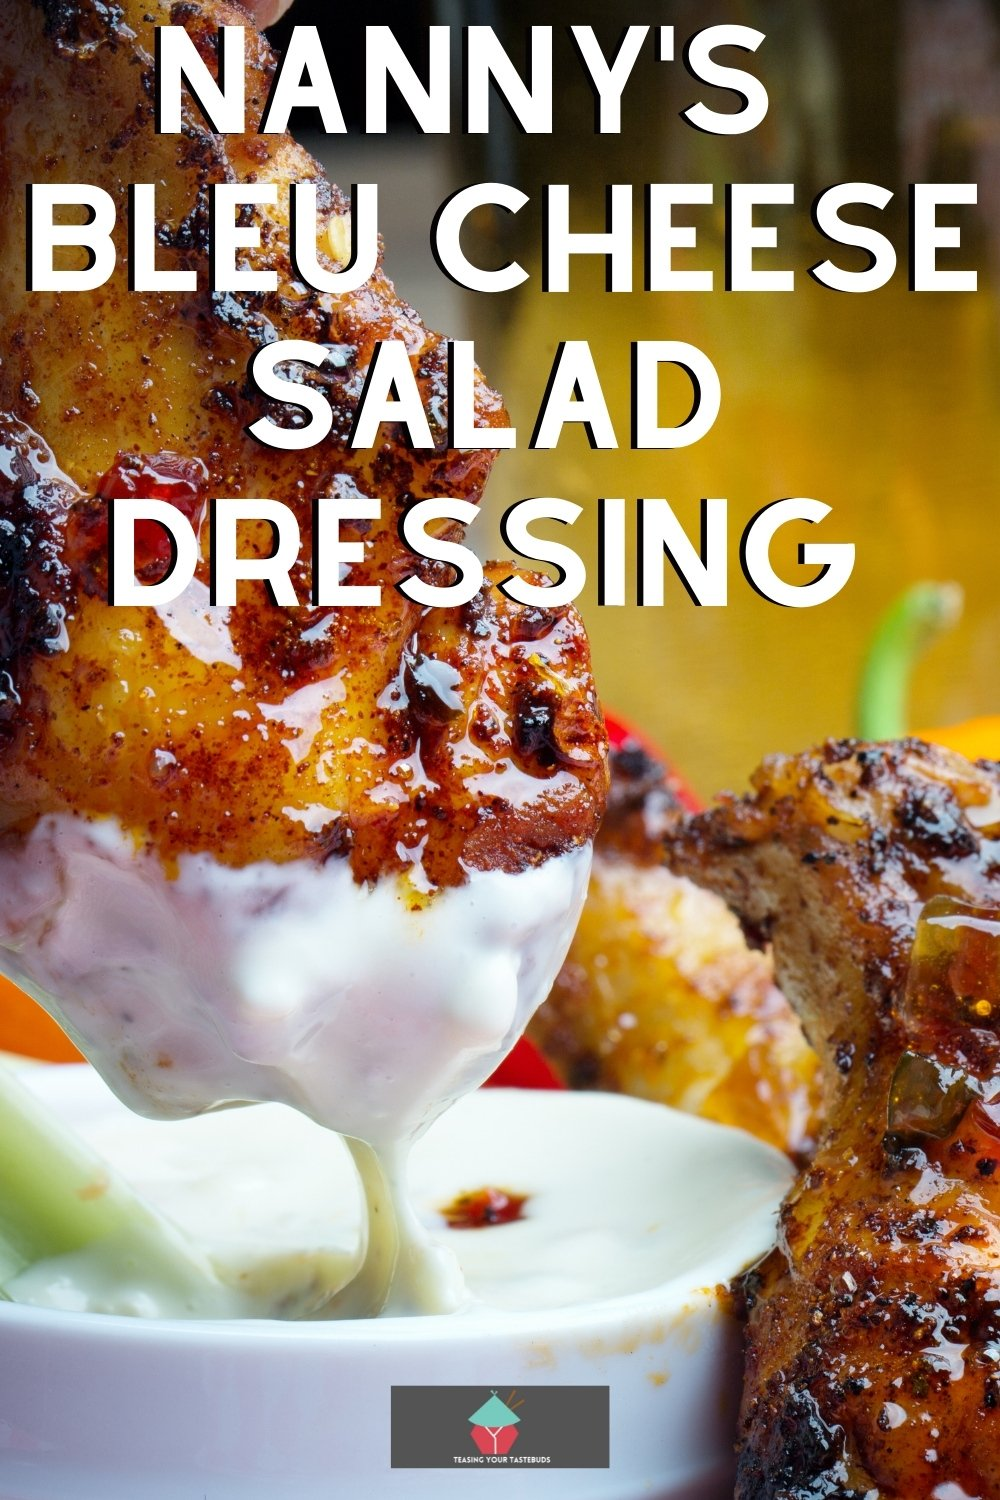 Nanny's VERY Easy Bleu Cheese Salad Dressing is a quick and simple recipe. Use on your salads and also goes great as a dip or serve with party food!